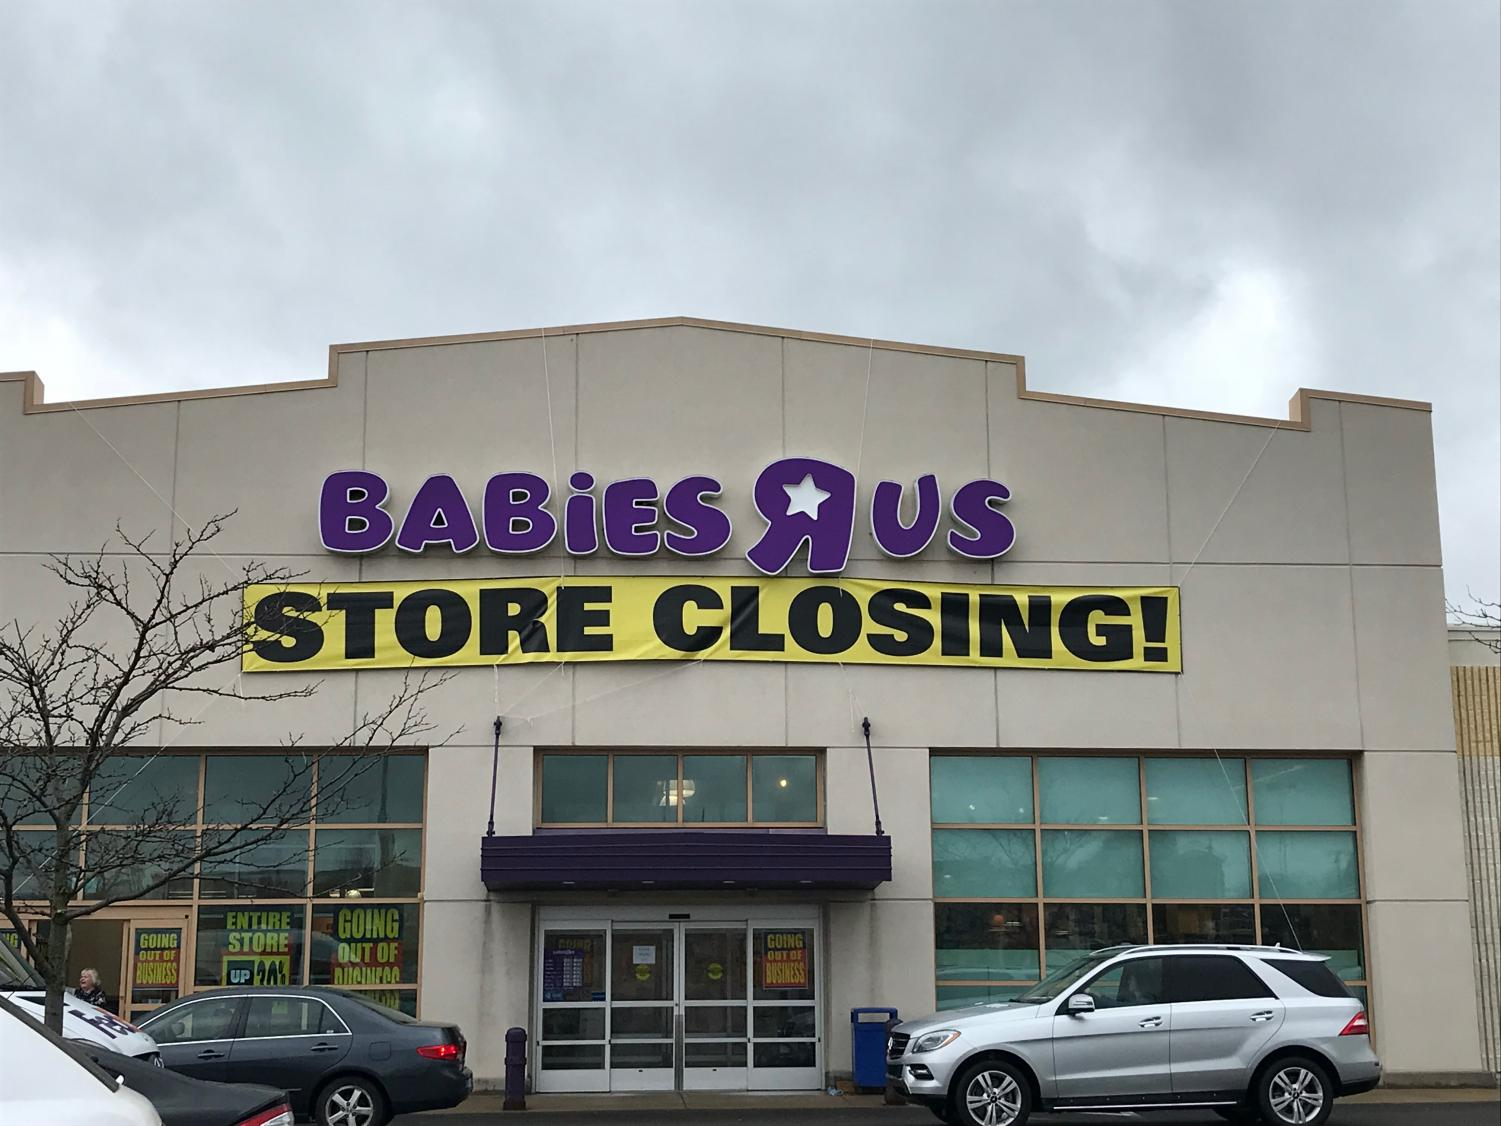 According to CNN, after more than 70 years in business, shut down or sell all of its 735 stores in the U.S.